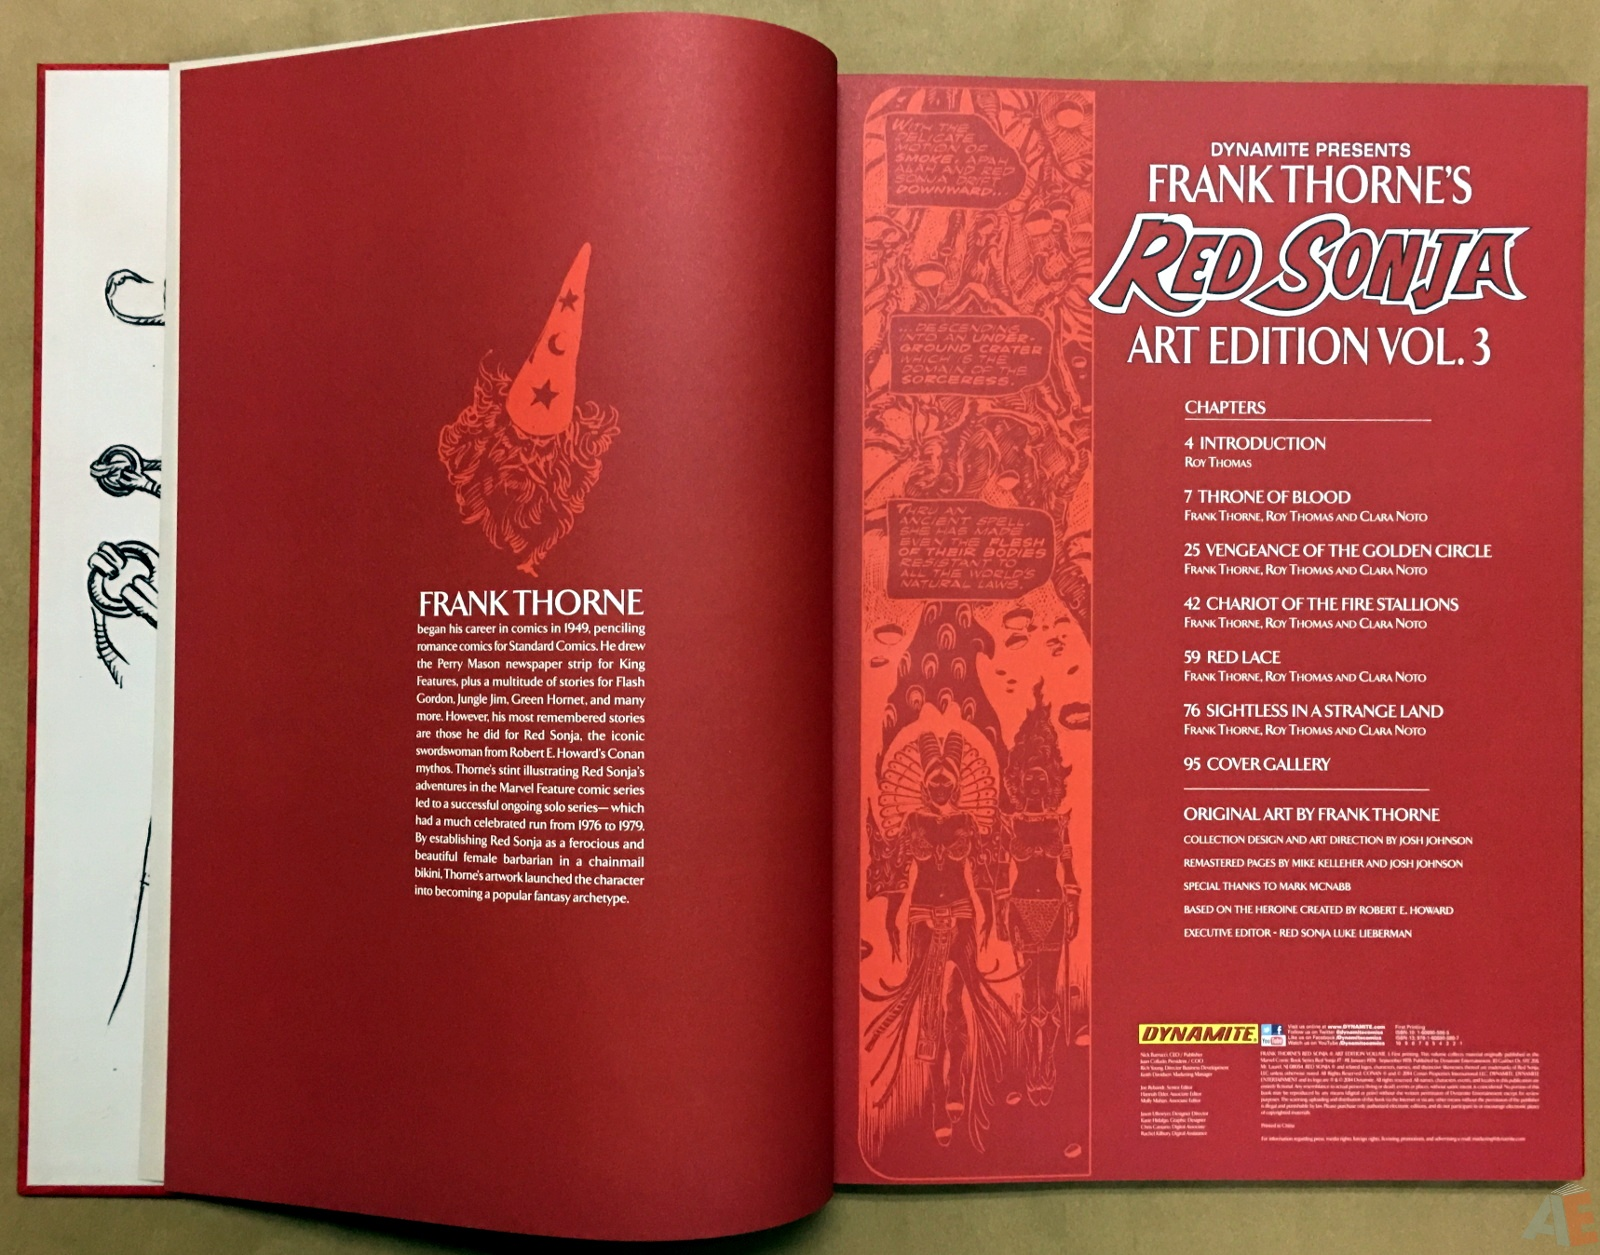 Frank Thorne's Red Sonja Art Edition Volume 3